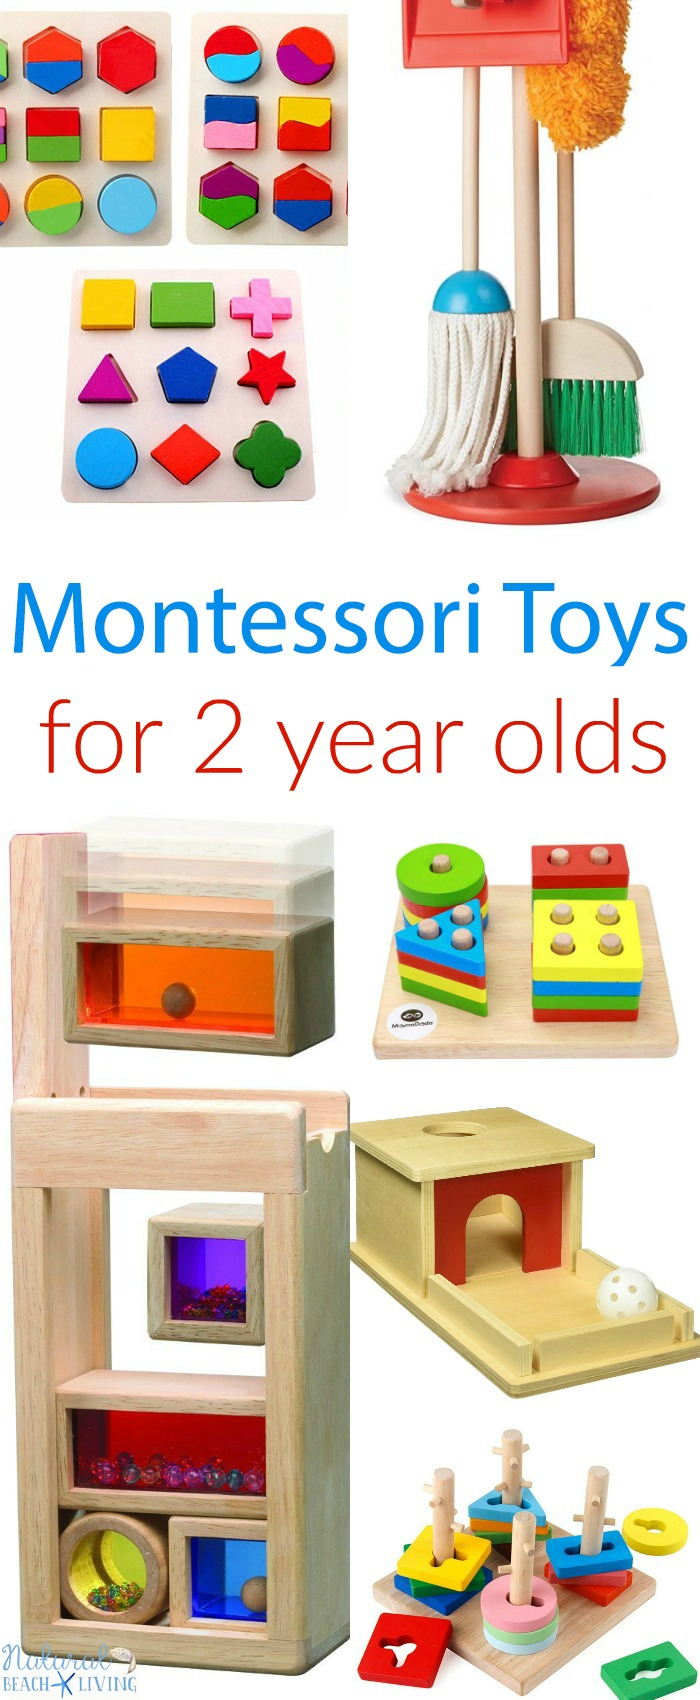 Toys For 2 Year Olds : The ultimate guide for best montessori toys year